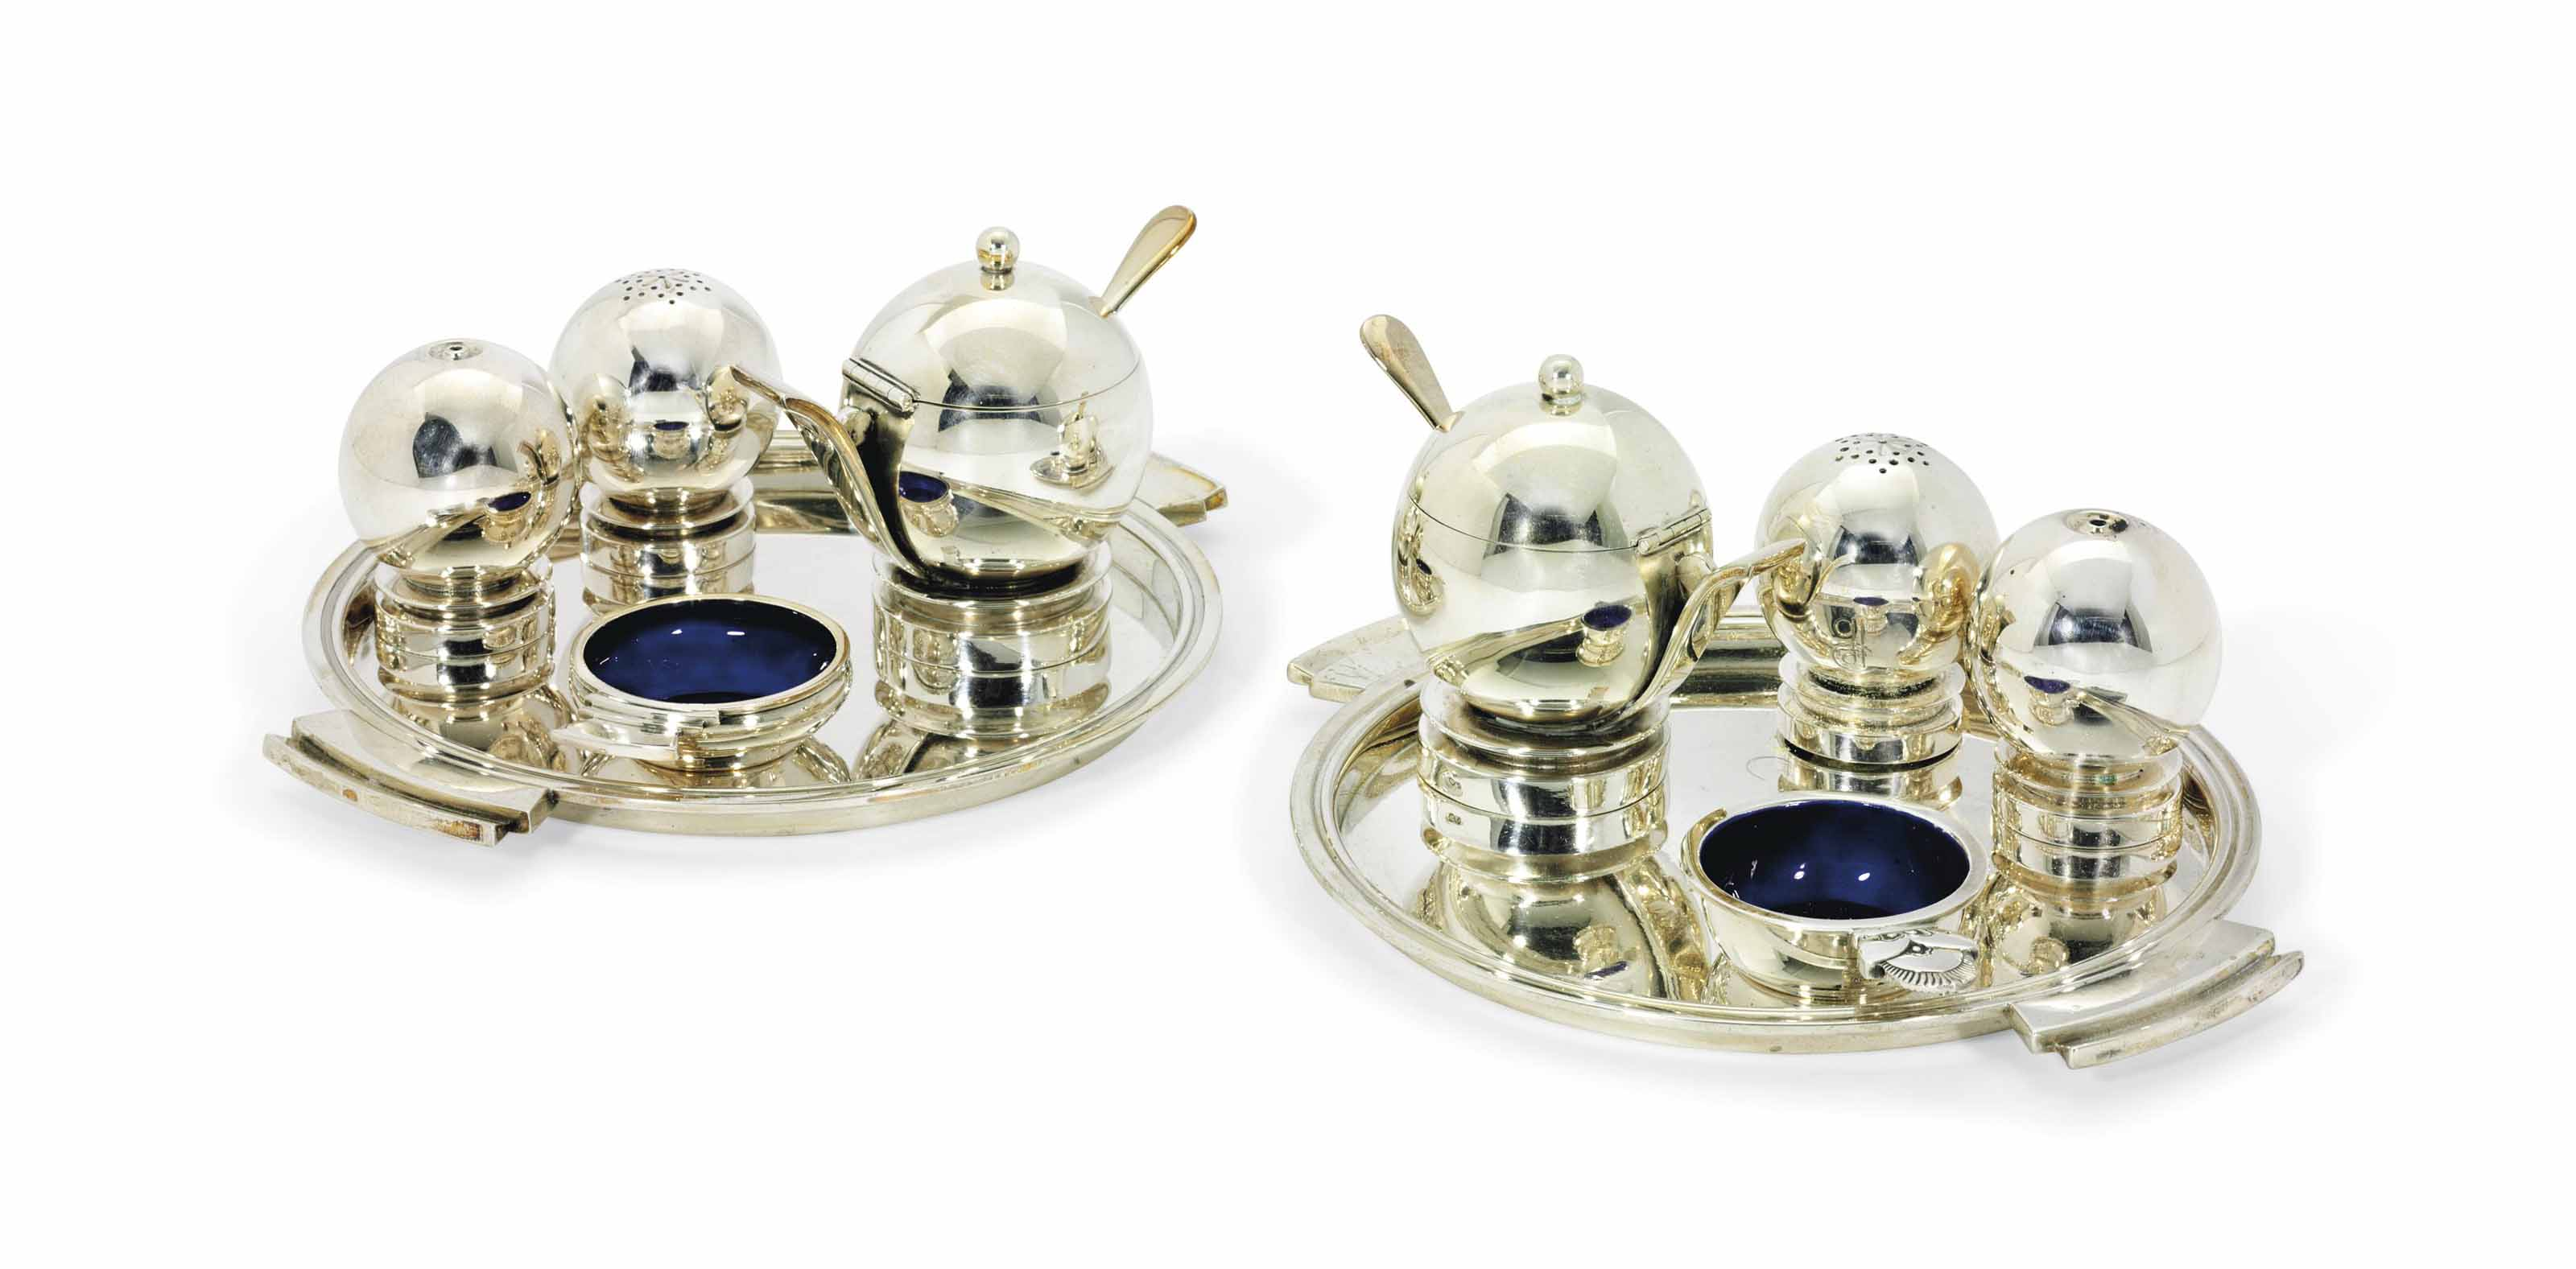 A PAIR OF DANISH CONDIMENT SETS DESIGNED BY HARALD NIELSEN